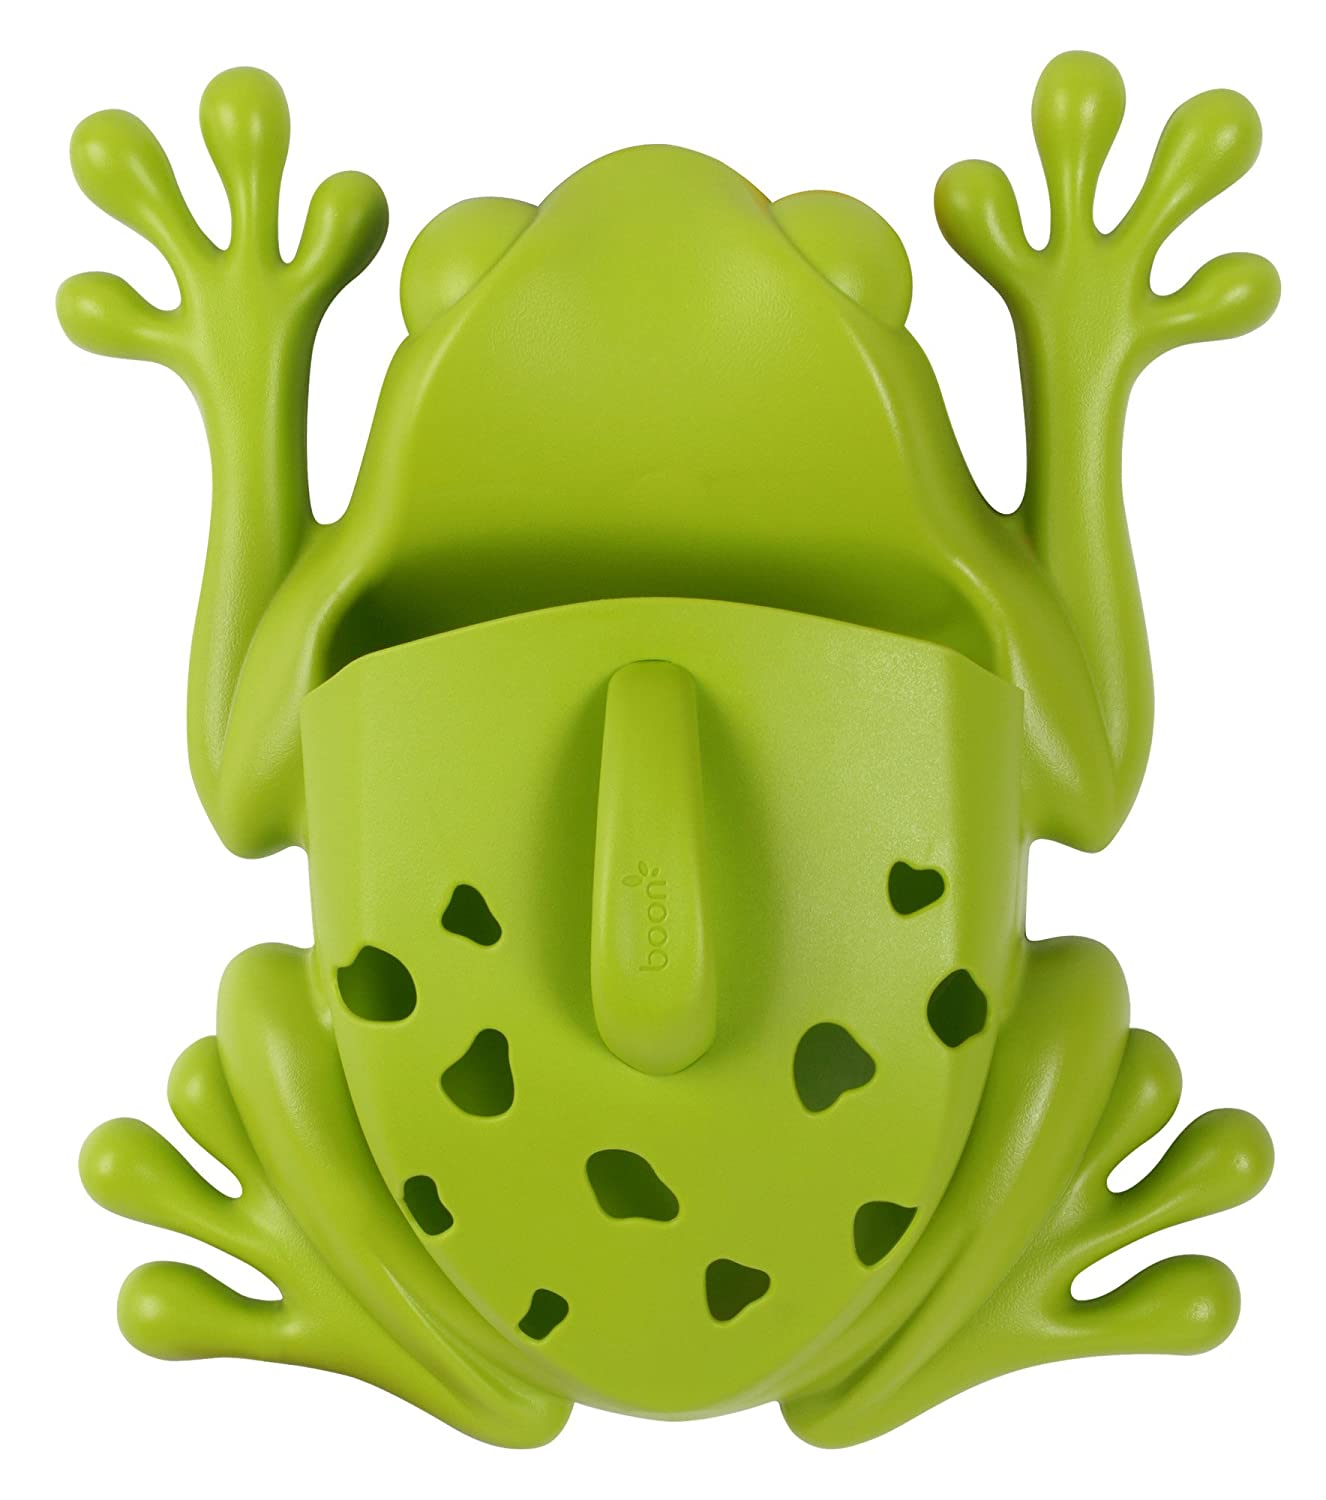 Amazon.com : Boon Frog Pod Bath Toy Scoop, Green (Discontinued by ...